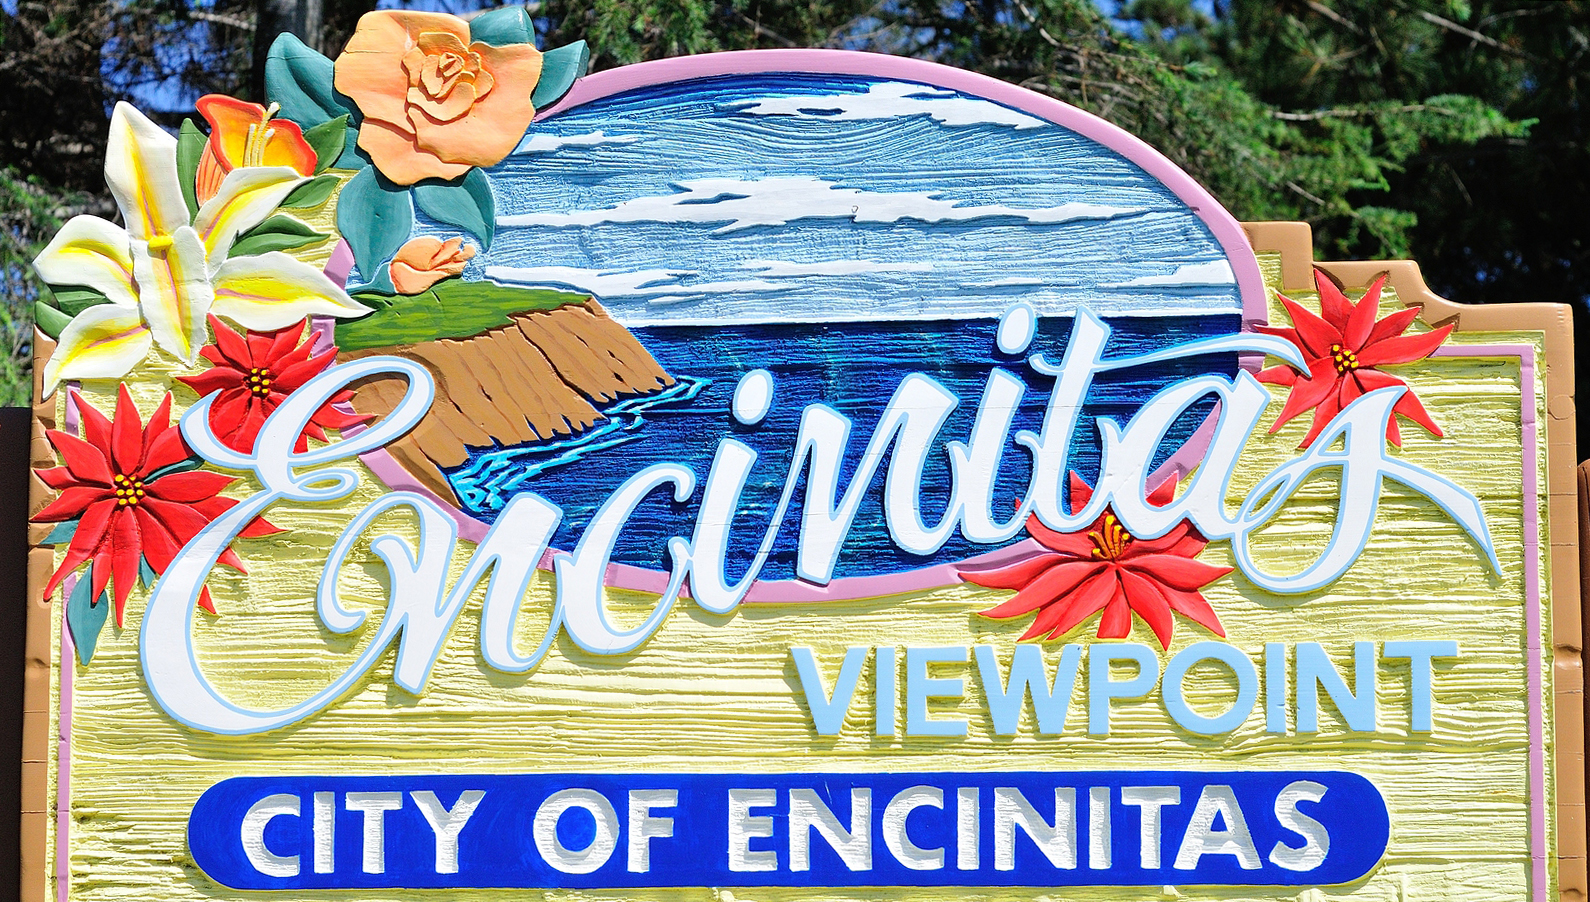 Housing, Streetscape to dominate Encinitas headlines in 2019